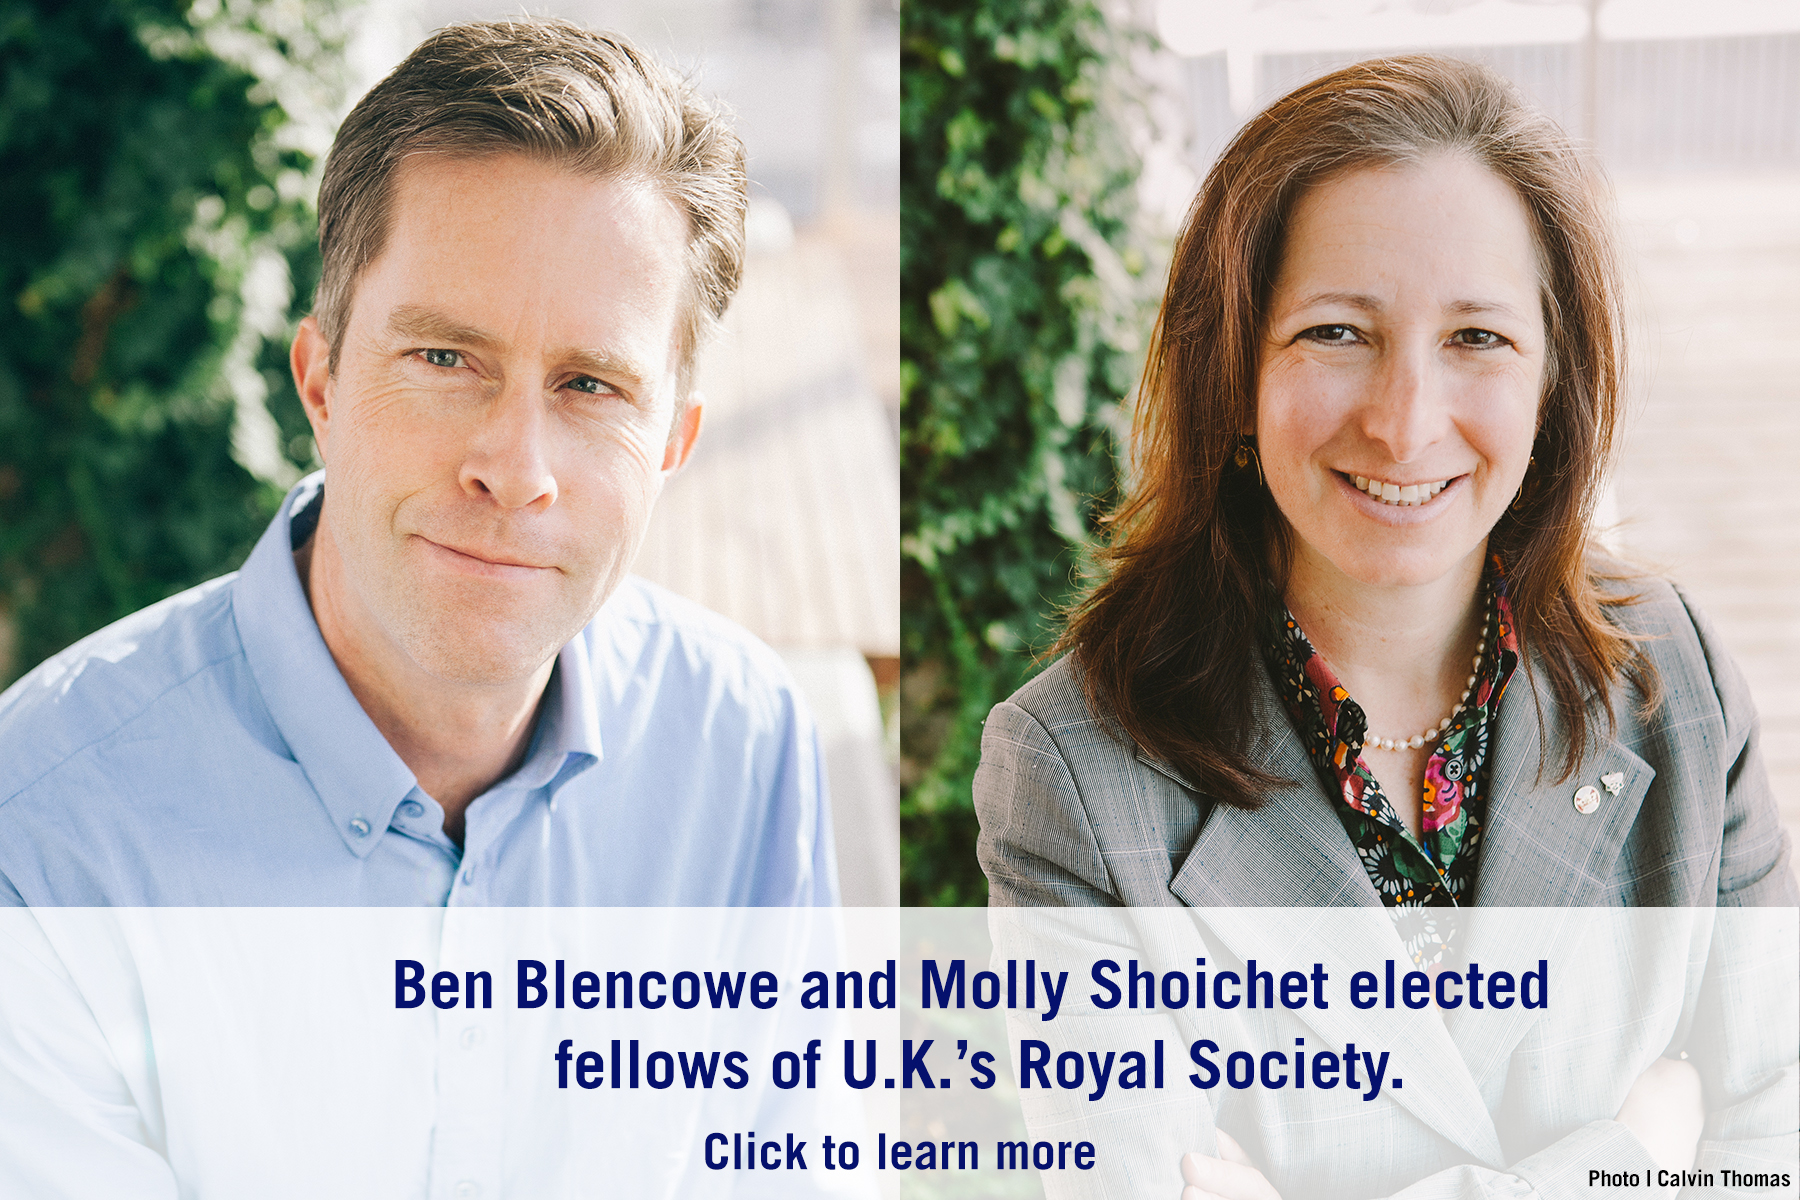 Ben Blencowe and Molly Shoichet